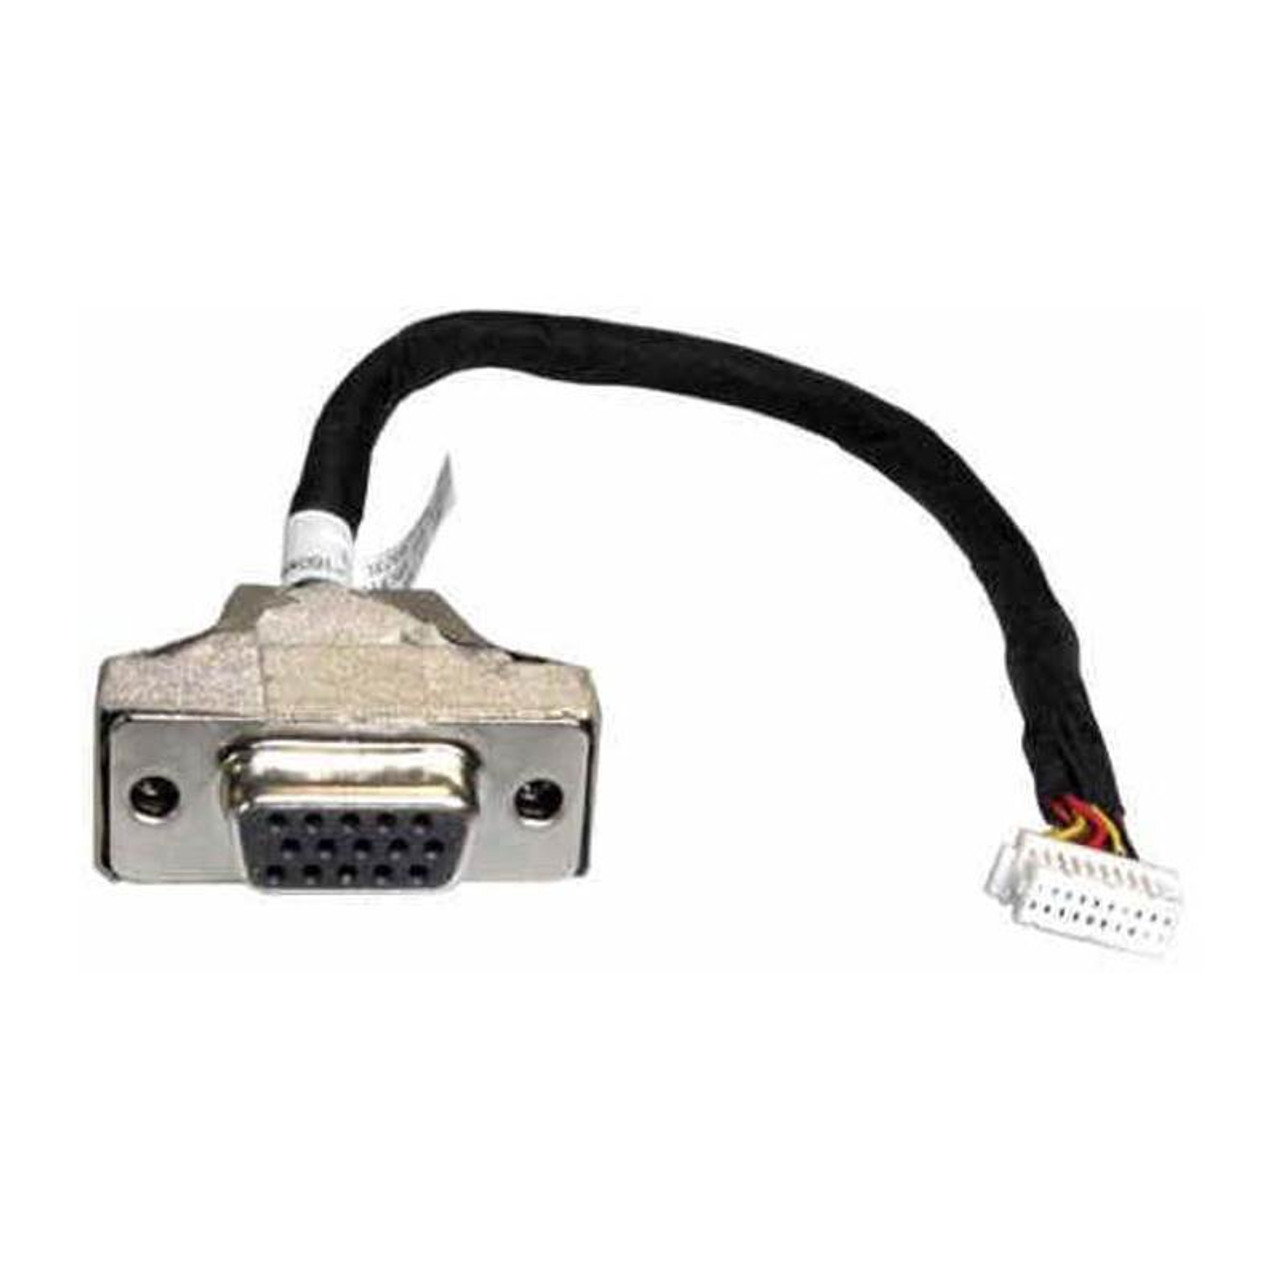 Image for Shuttle PVG01 VGA Port Accessory for Shuttle 8 Series Slim PCs CX Computer Superstore